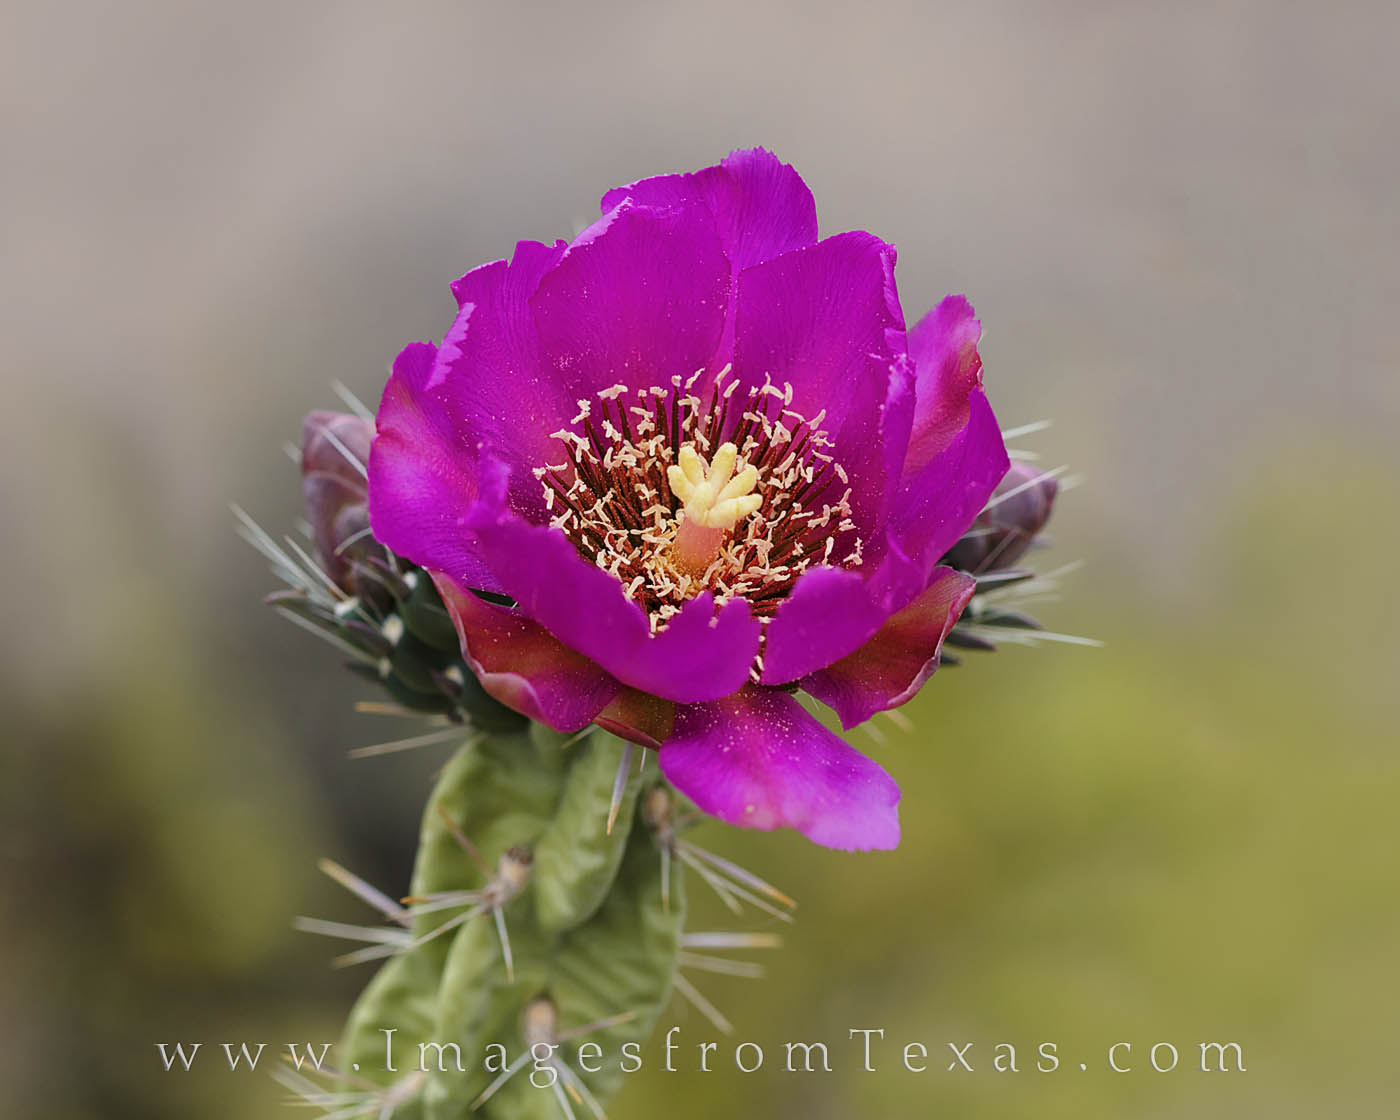 big bend, cholla, cacti, blooms, wildflowers, big bend ranch, cactus, chihuahuan desert, photo